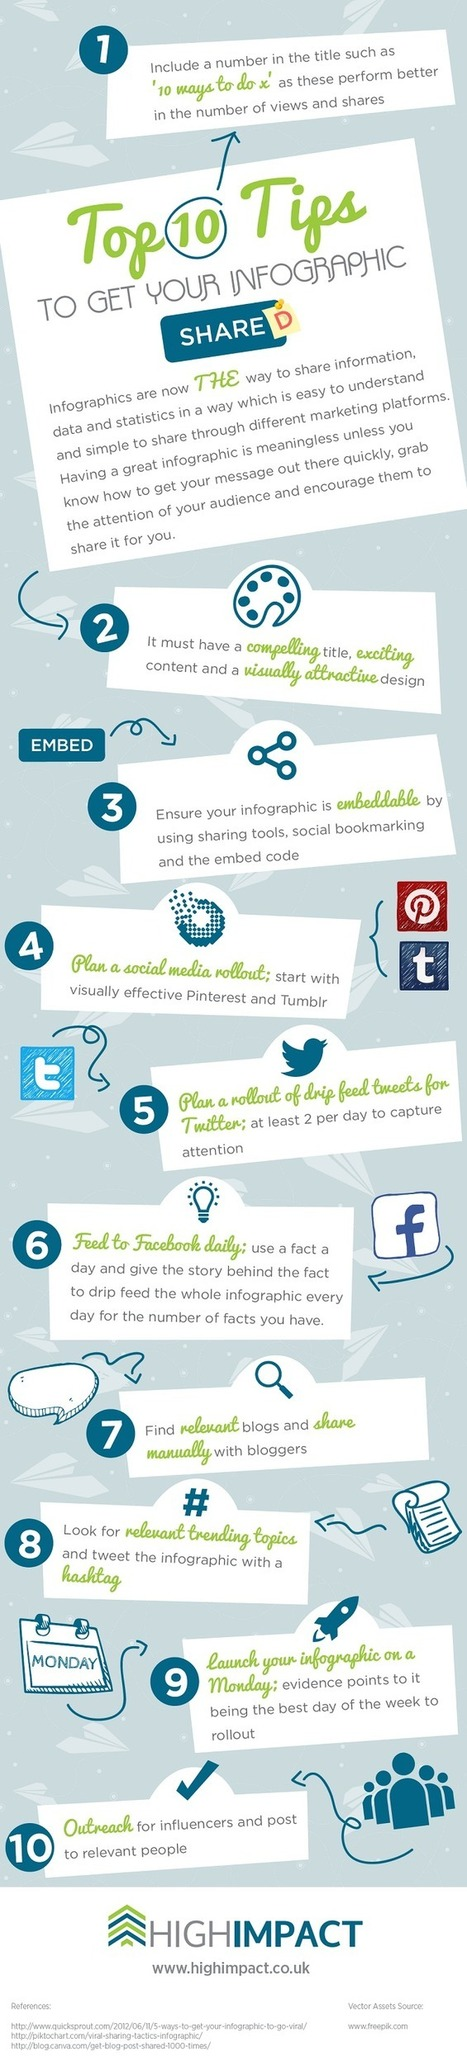 How to Get Your Infographic Shared More on Social Media | infografias - infographics | Scoop.it